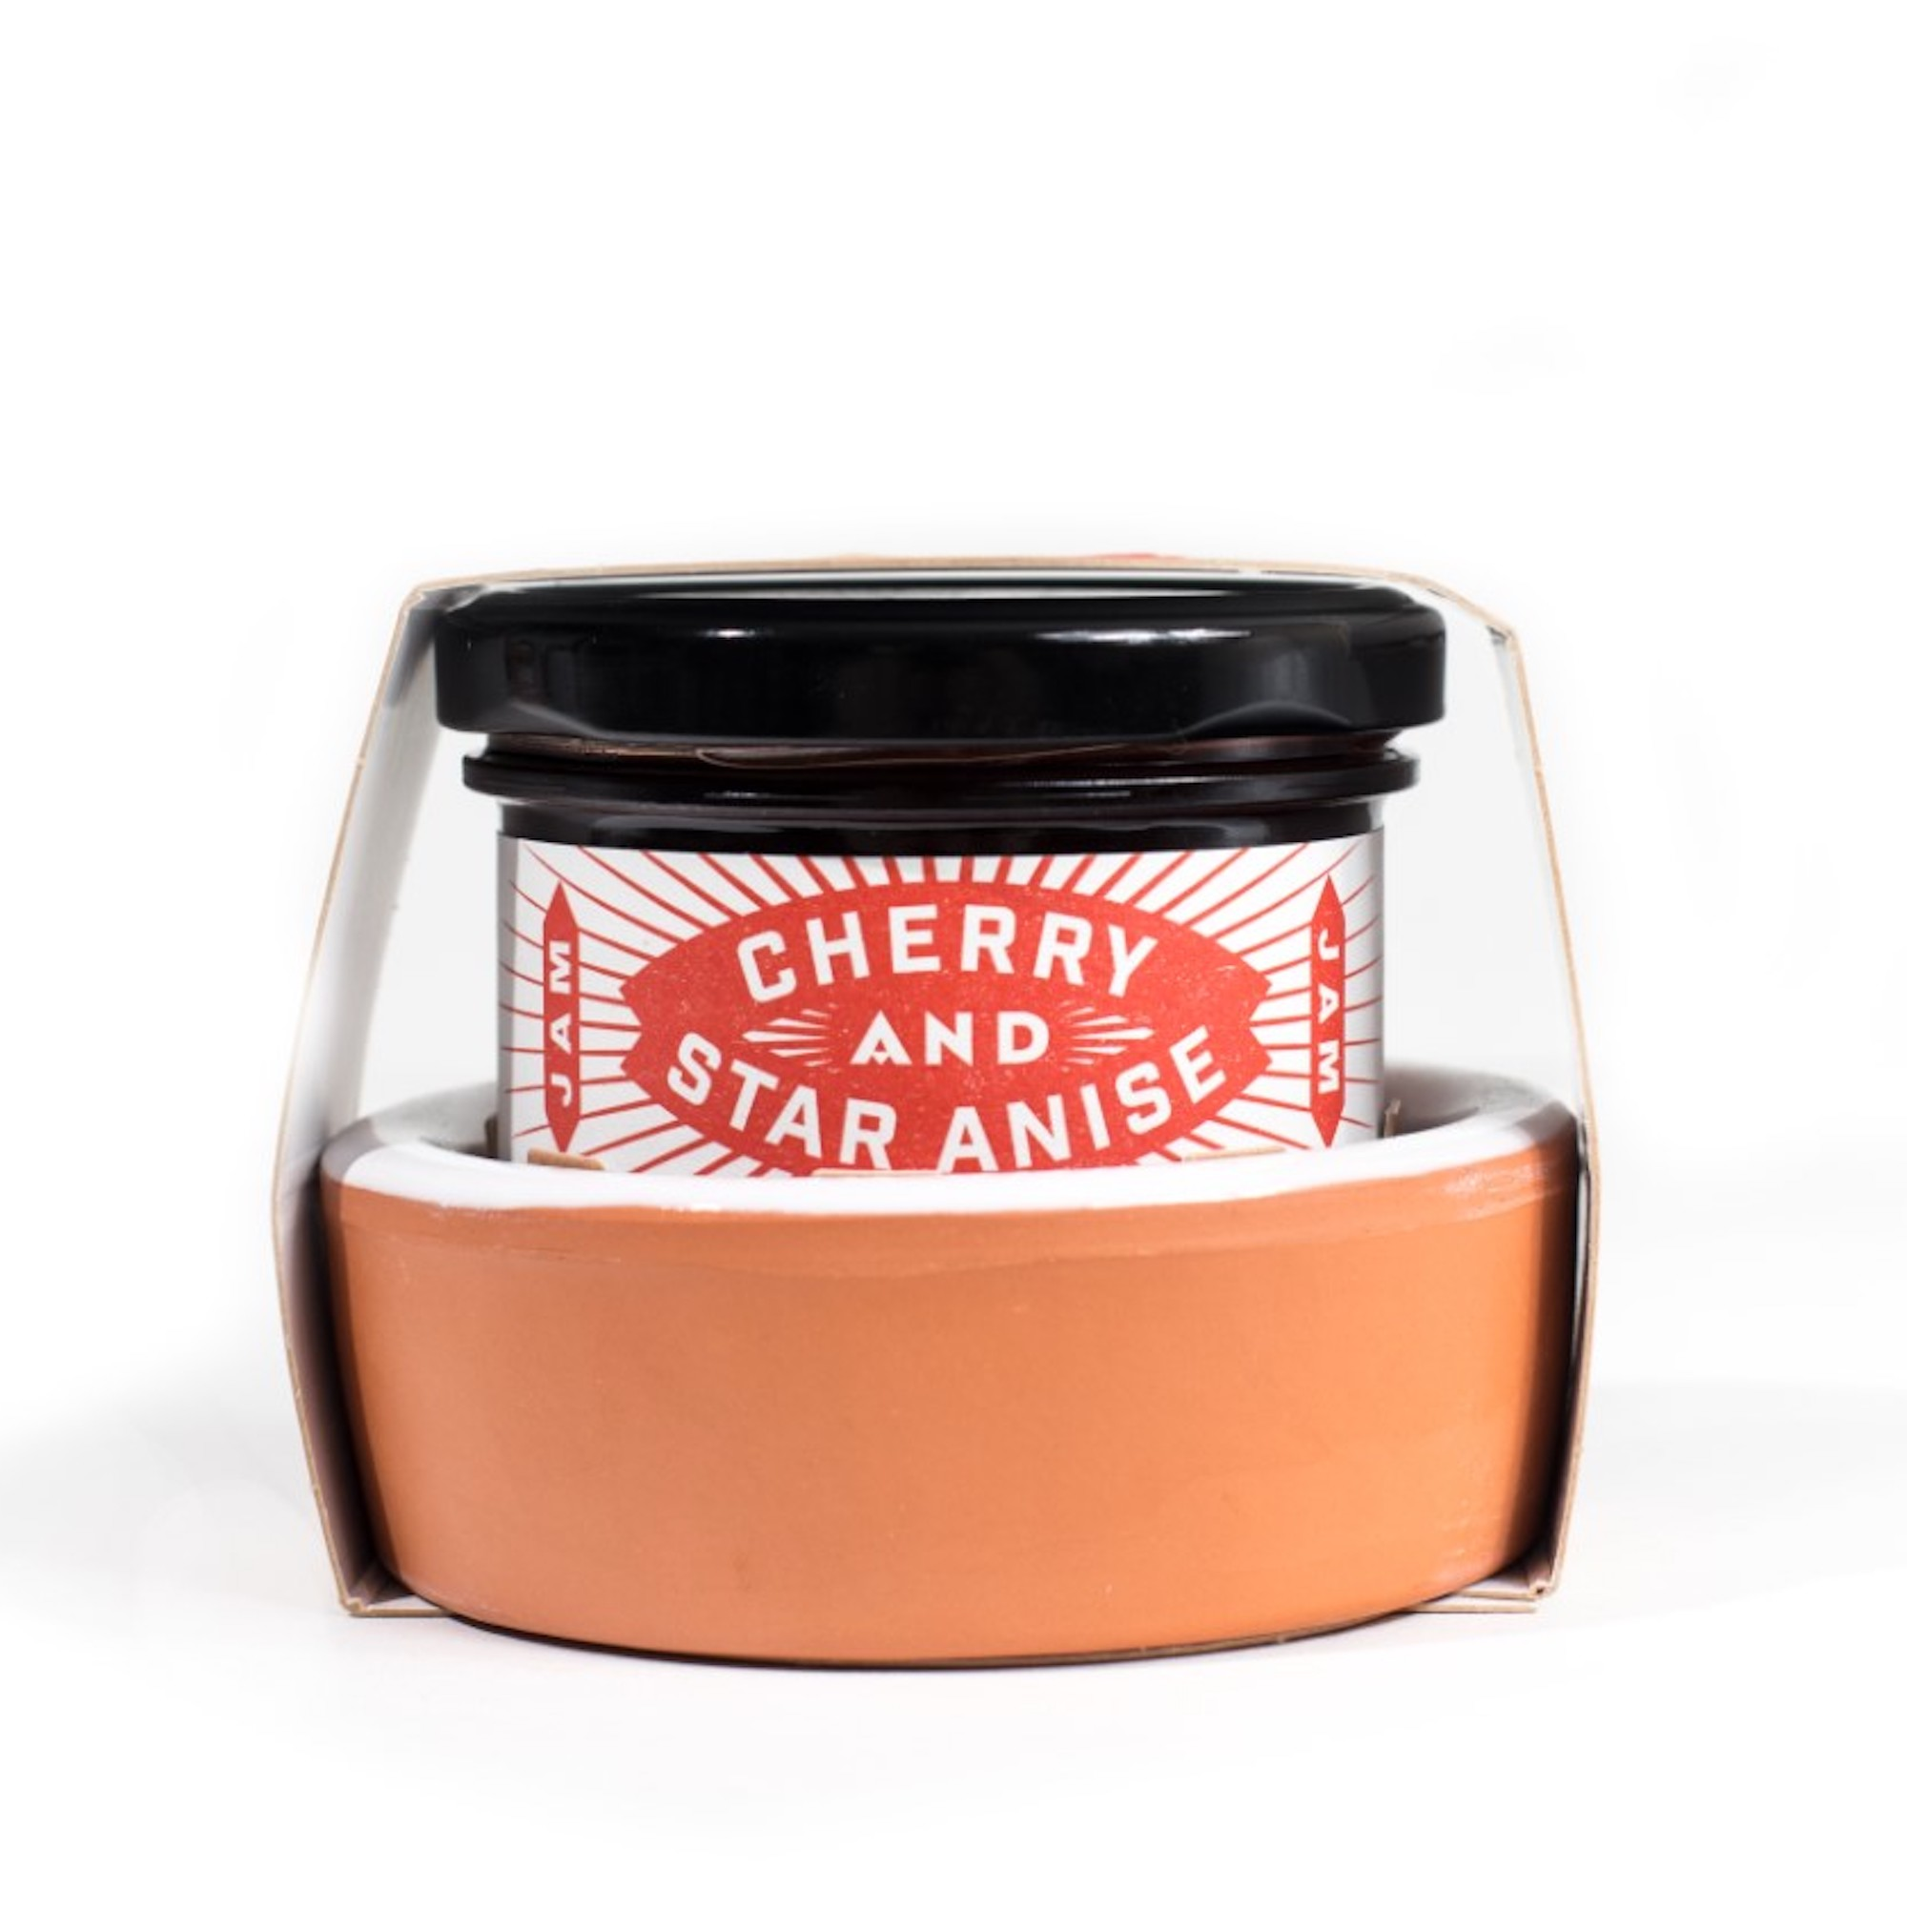 Cherry & Star Anise Jam Gift Set by Makers & Merchants